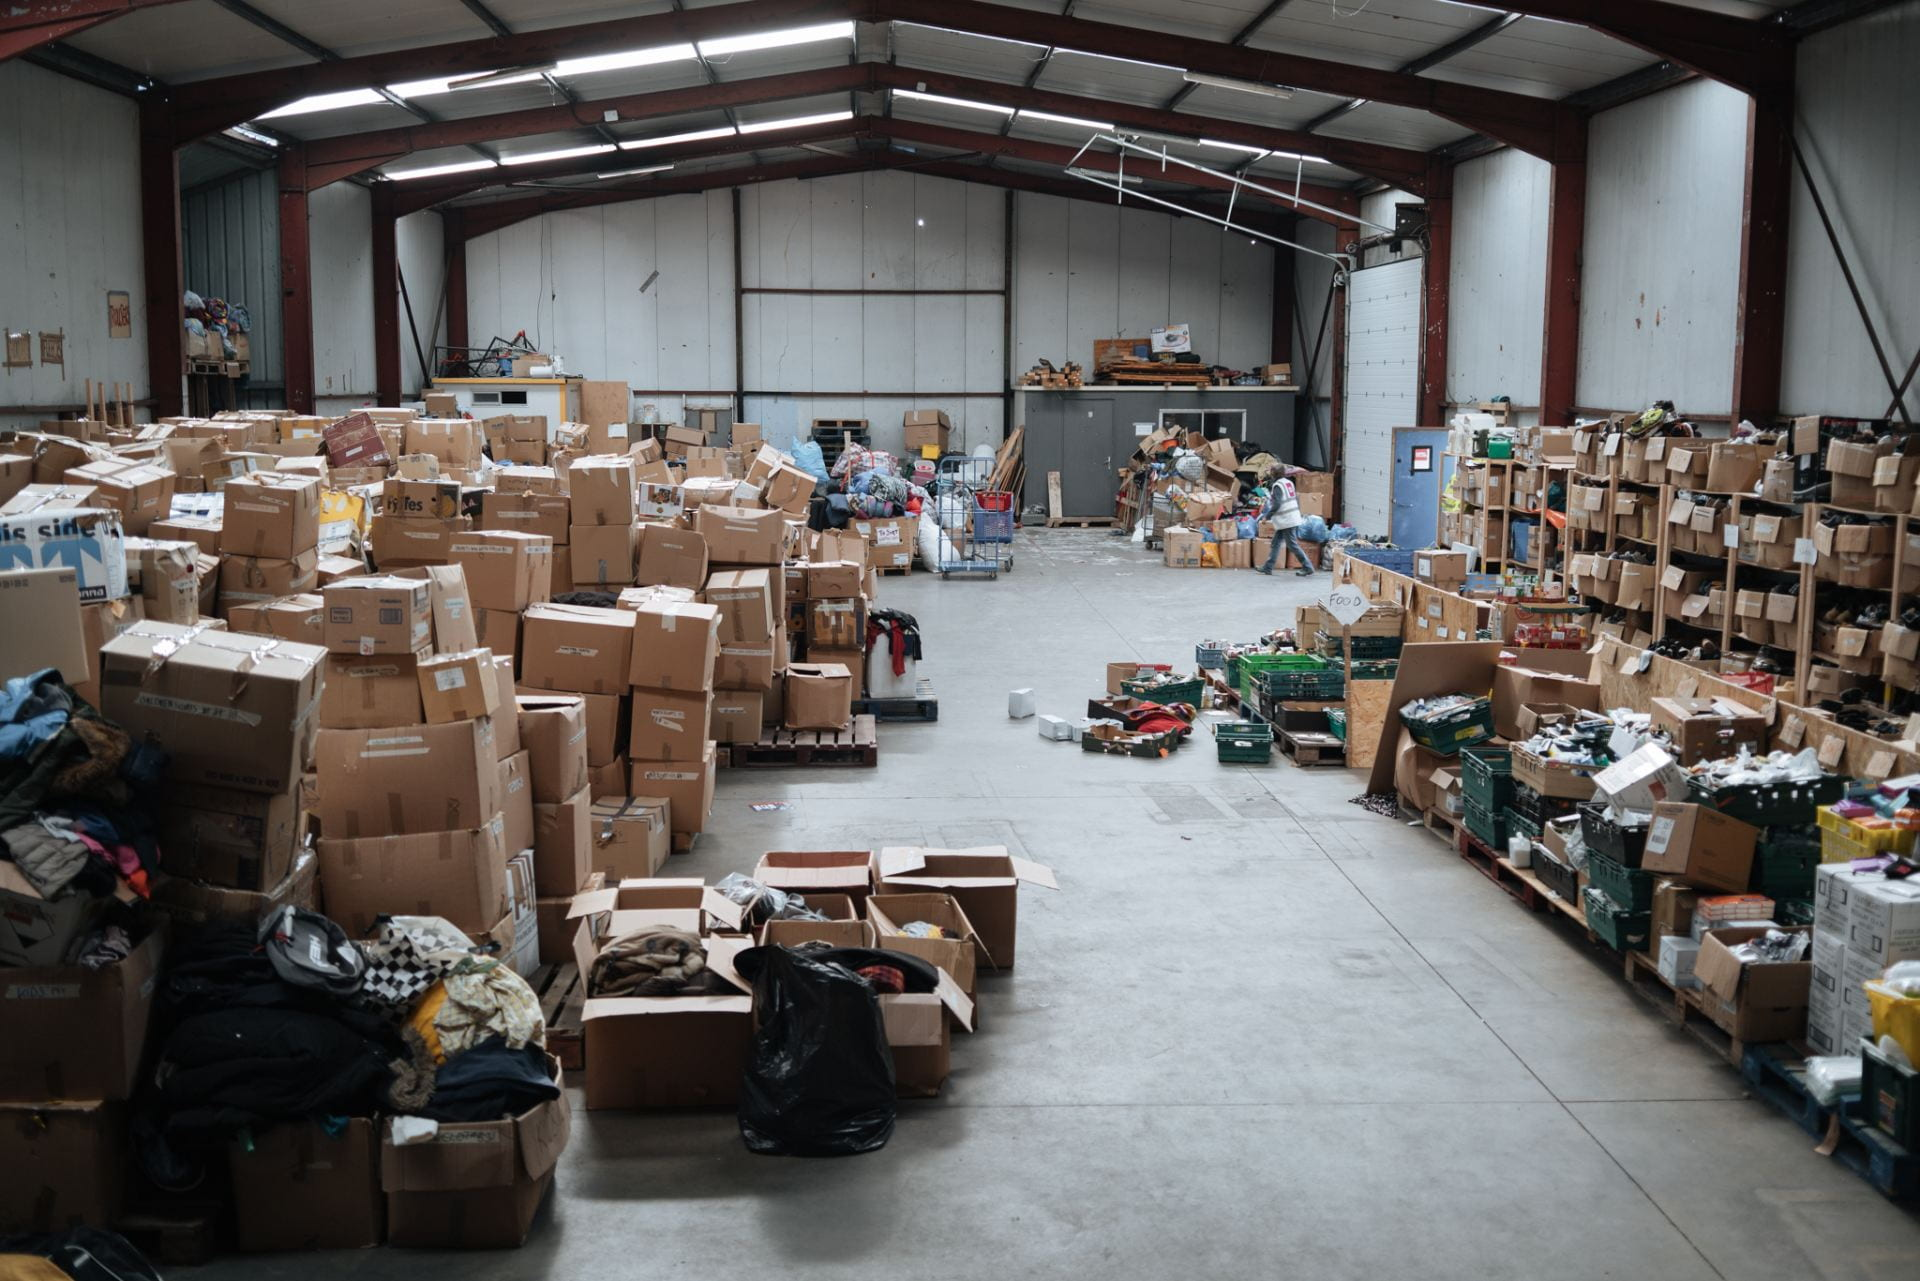 Warehouse interior, stacked cardboard boxes containing a variety of shoes & clothing.